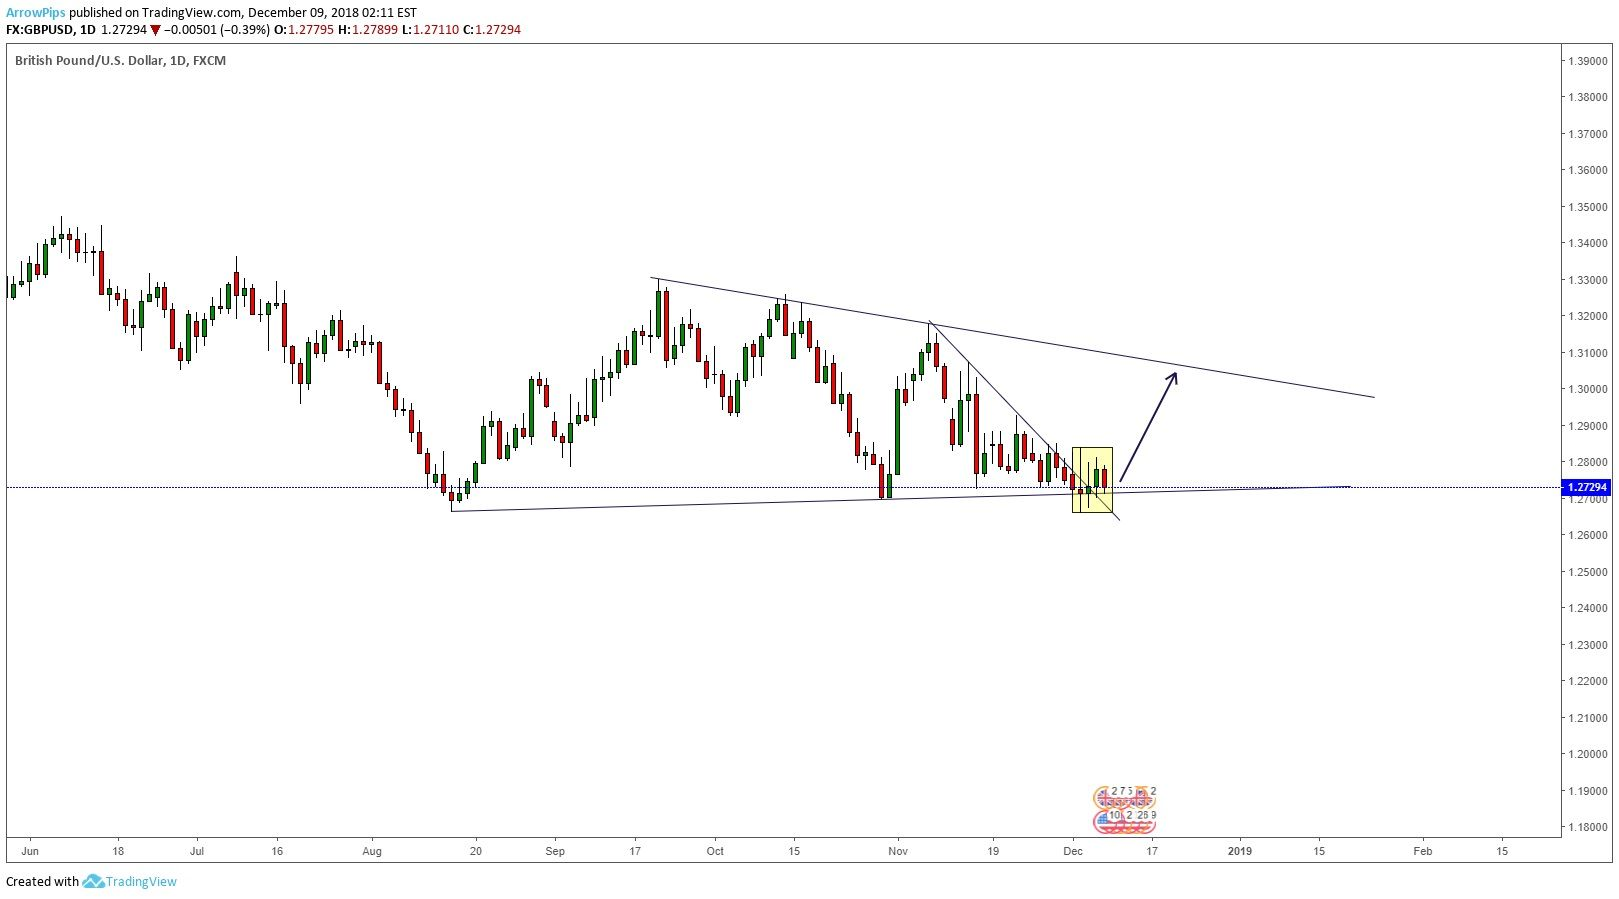 Weekly Forecast & Technical Analysis for GBPUSD Chart